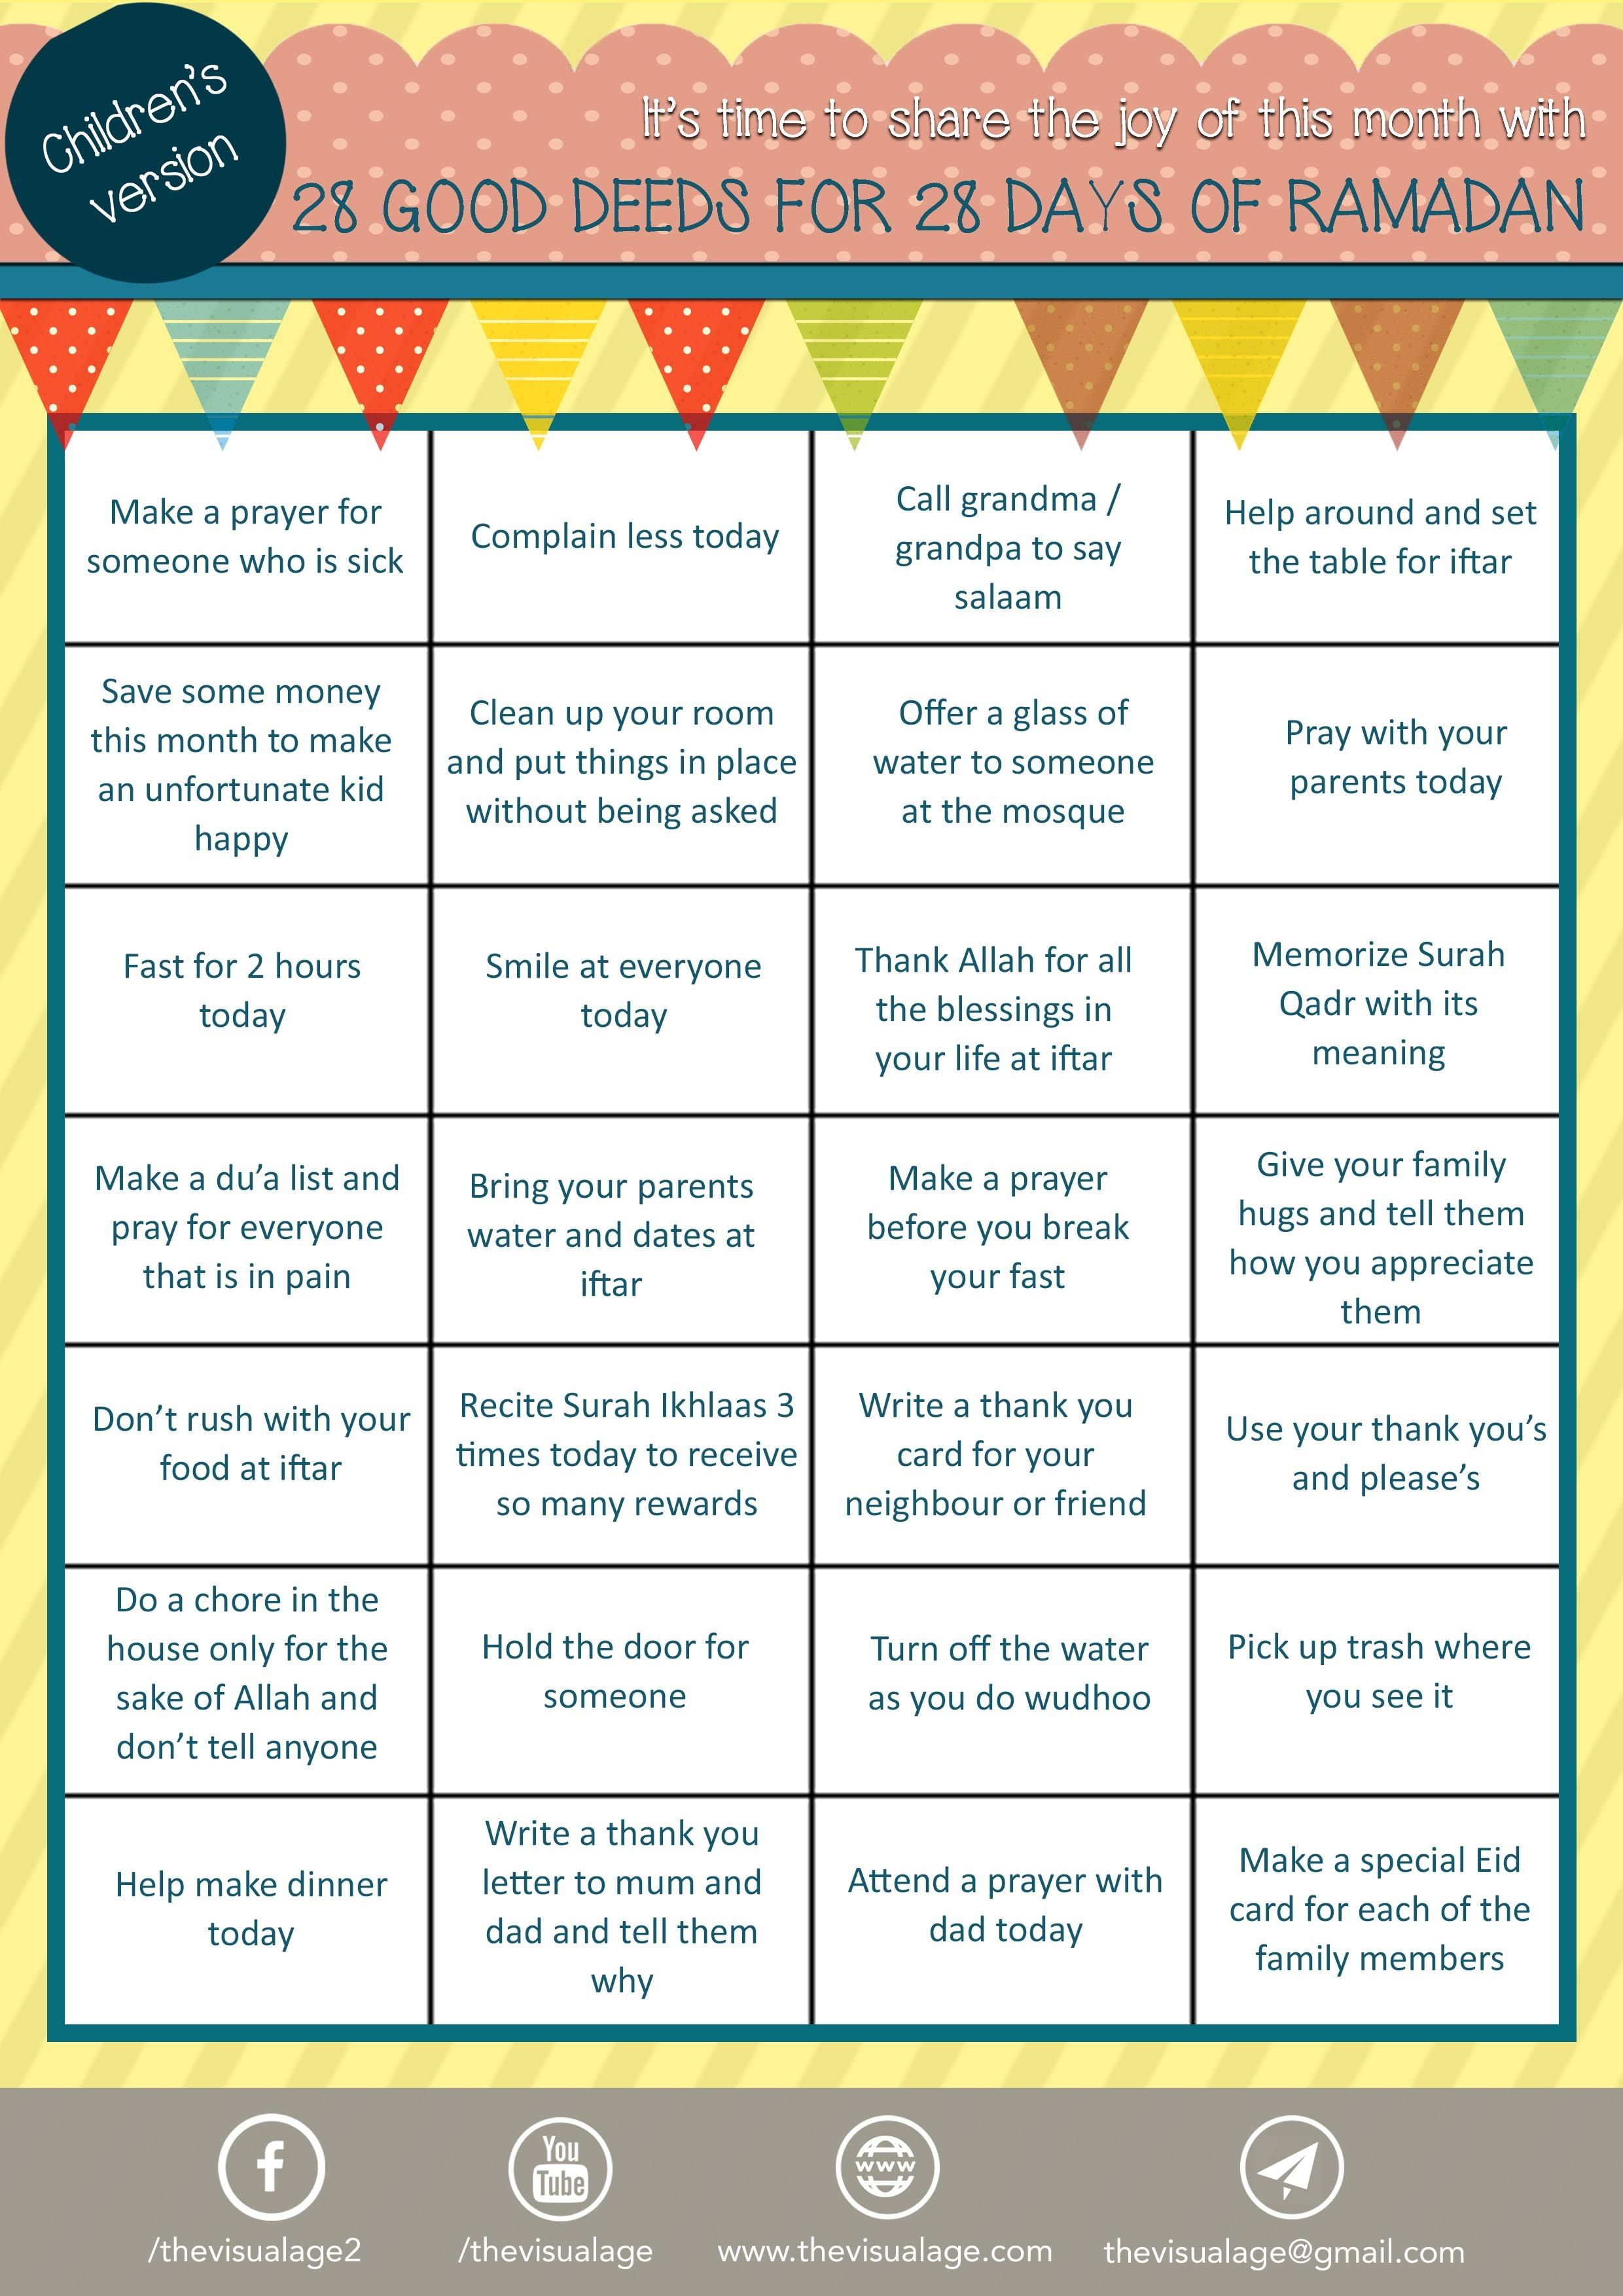 30 Good Deeds For 30 Days Of Ramadhan Kids Version